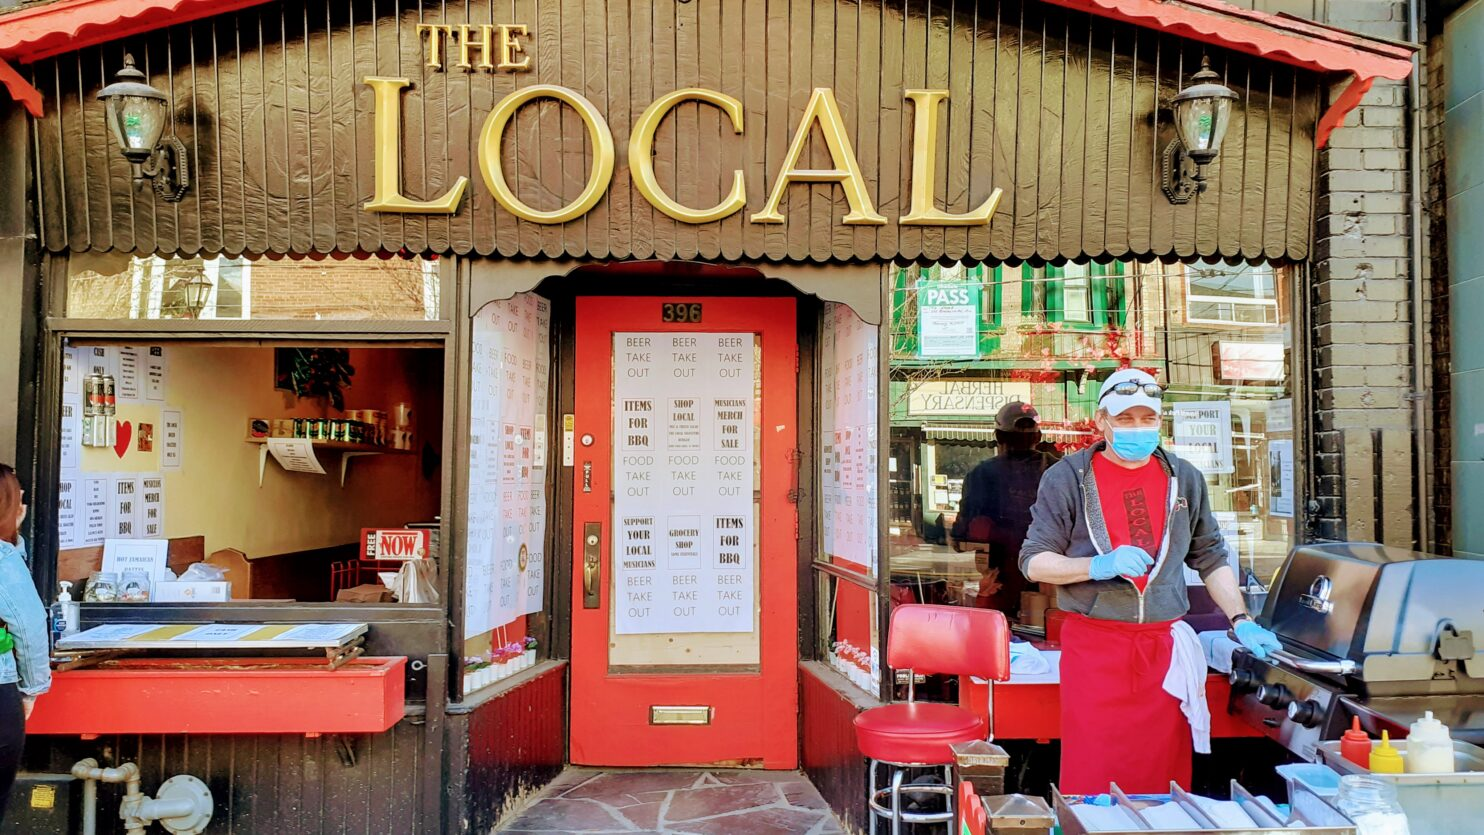 Masked chef prepares food in front of local pub, called The Local, during pandemic.